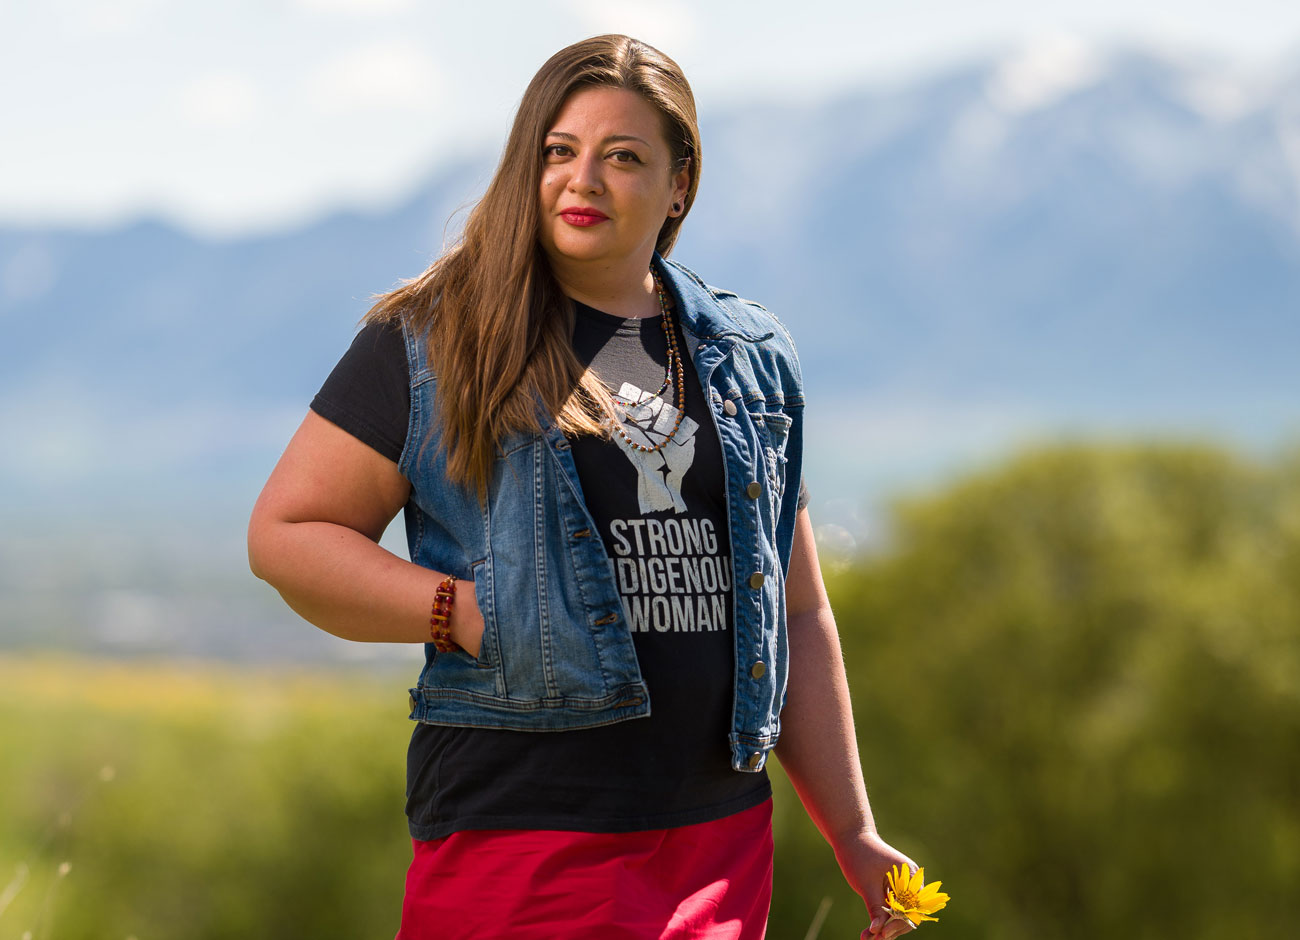 """a young Native American woman wearing a """"strong Indigenous woman"""" t-shirt and red dress with colored strips on the bottom stands in a field of bright golden flowers. She has a knowing smile."""